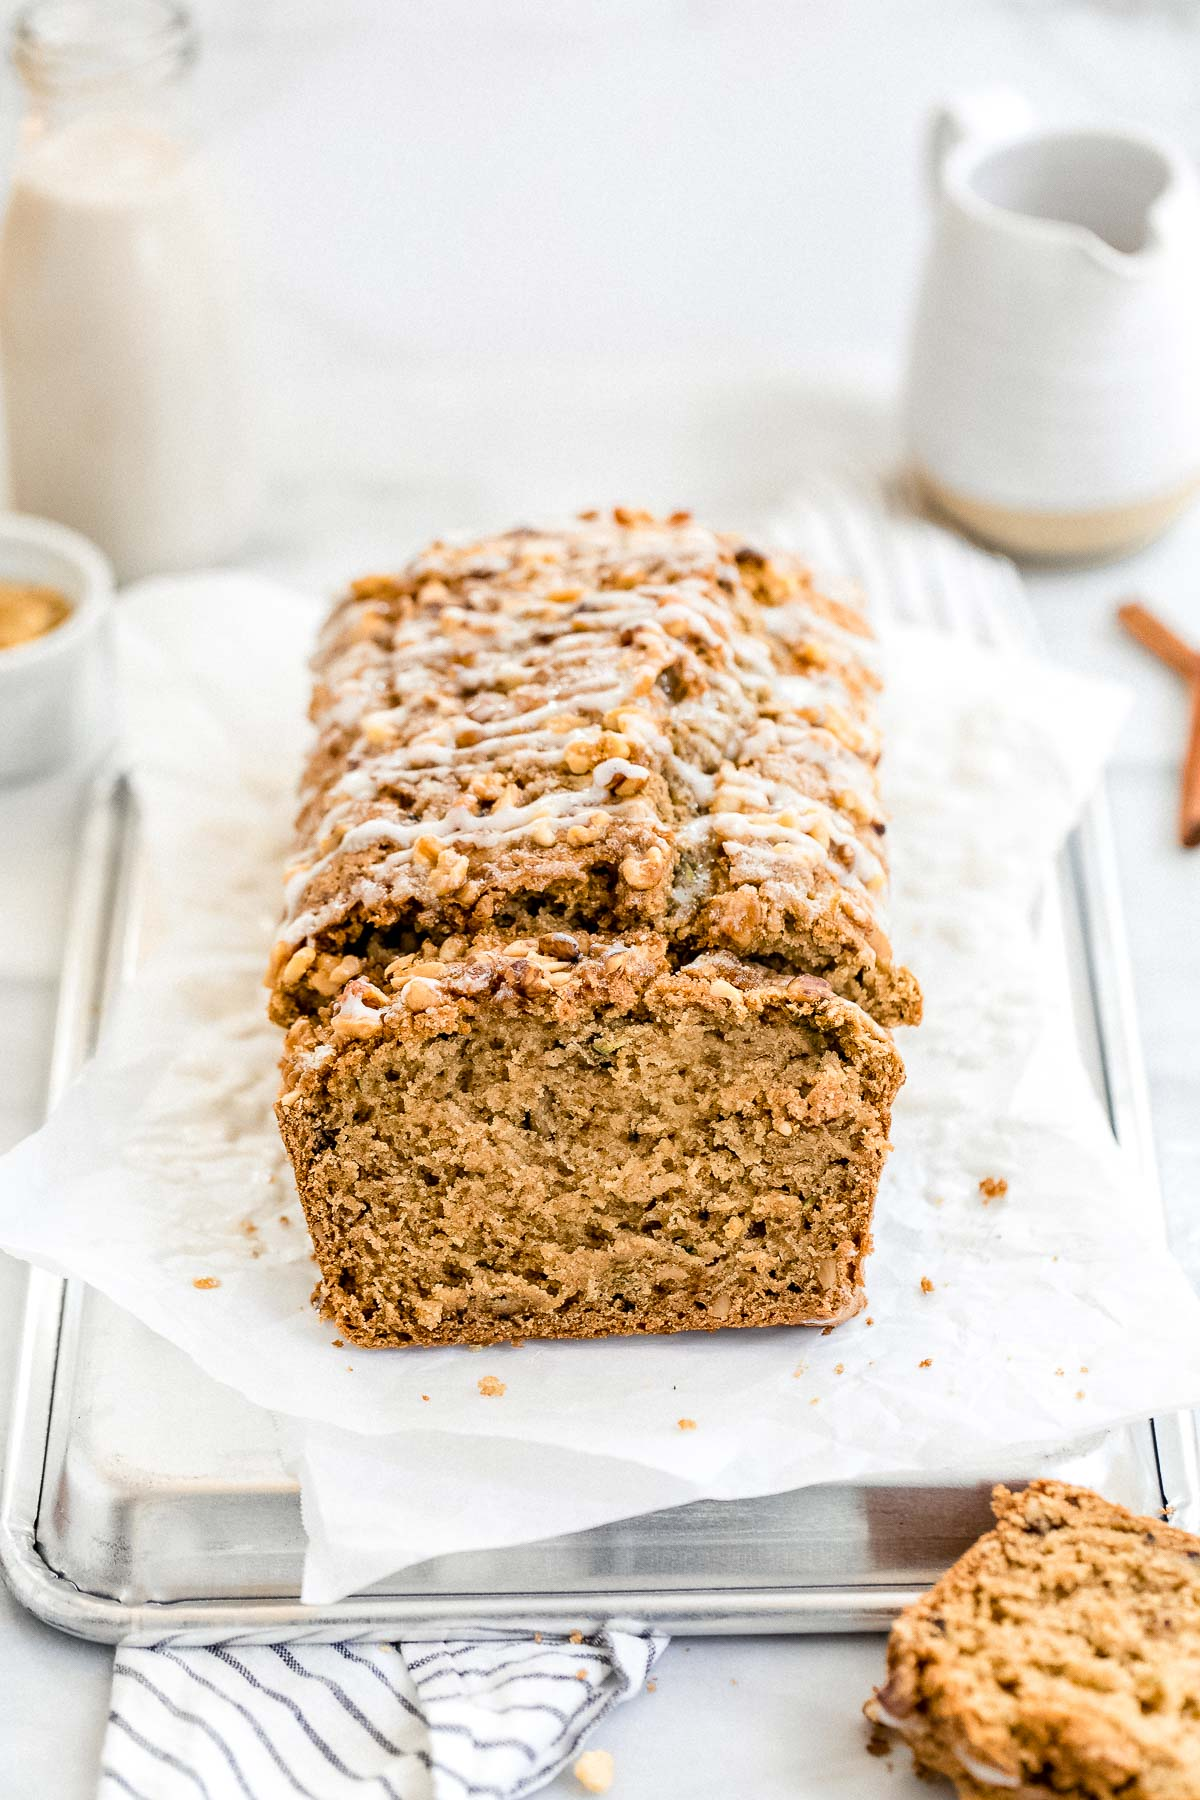 Gluten free zucchini bread with a drizzle on top with milk in the background.